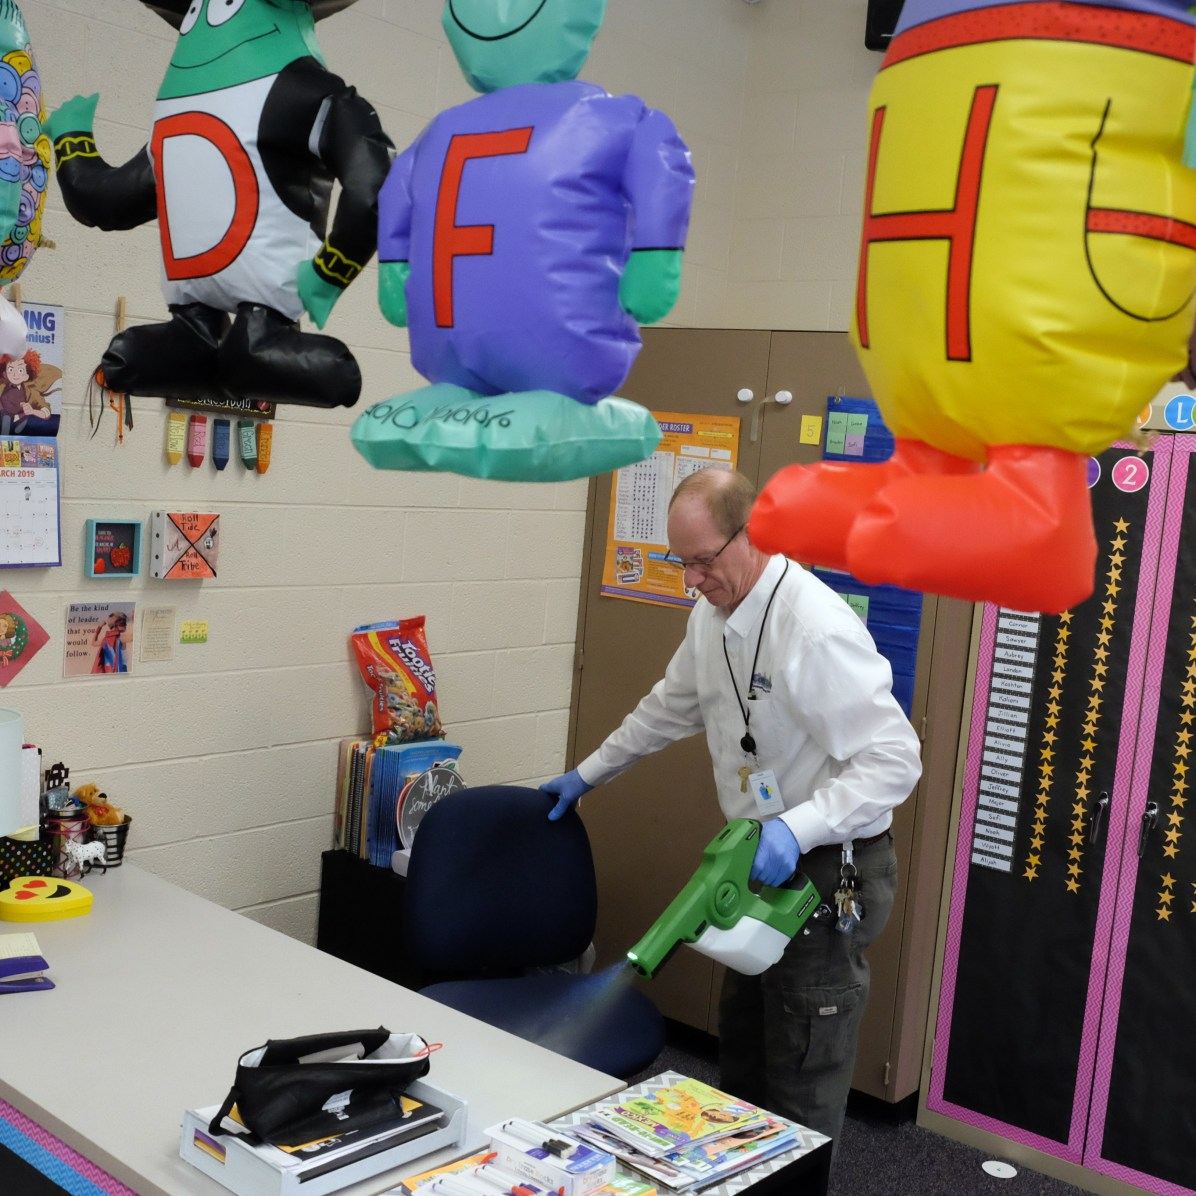 Cris Myers uses a Victory Innovations sprayer in a kindergarten classroom. Cris (cq) Myers (cq), manager, building maintenance services for CorpClean (cq), working at Christ the King School after a flu outbreak forced the closure of the school in Toledo, Ohio on March 6, 2019. He uses an electrostatic spray gun which atomizes and electro-statically charges the cleaning solution so it encapsulates whatever it's sprayed on. THE BLADE/JETTA FRASER